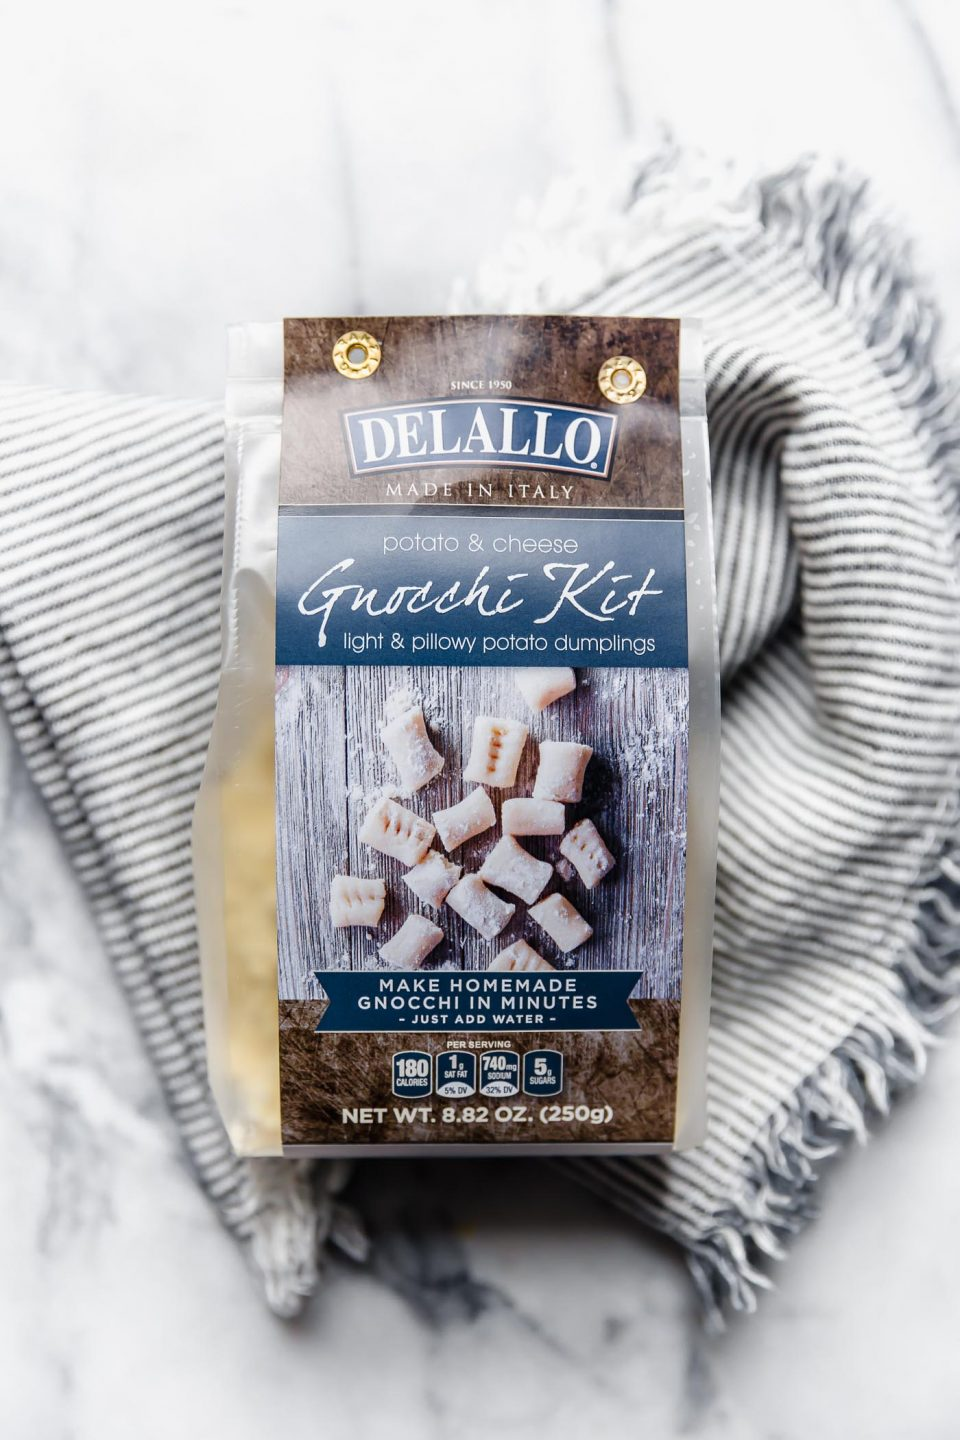 DeLallo's brand new Gnocchi Kit, sitting on striped linen napkin atop a white marble surface